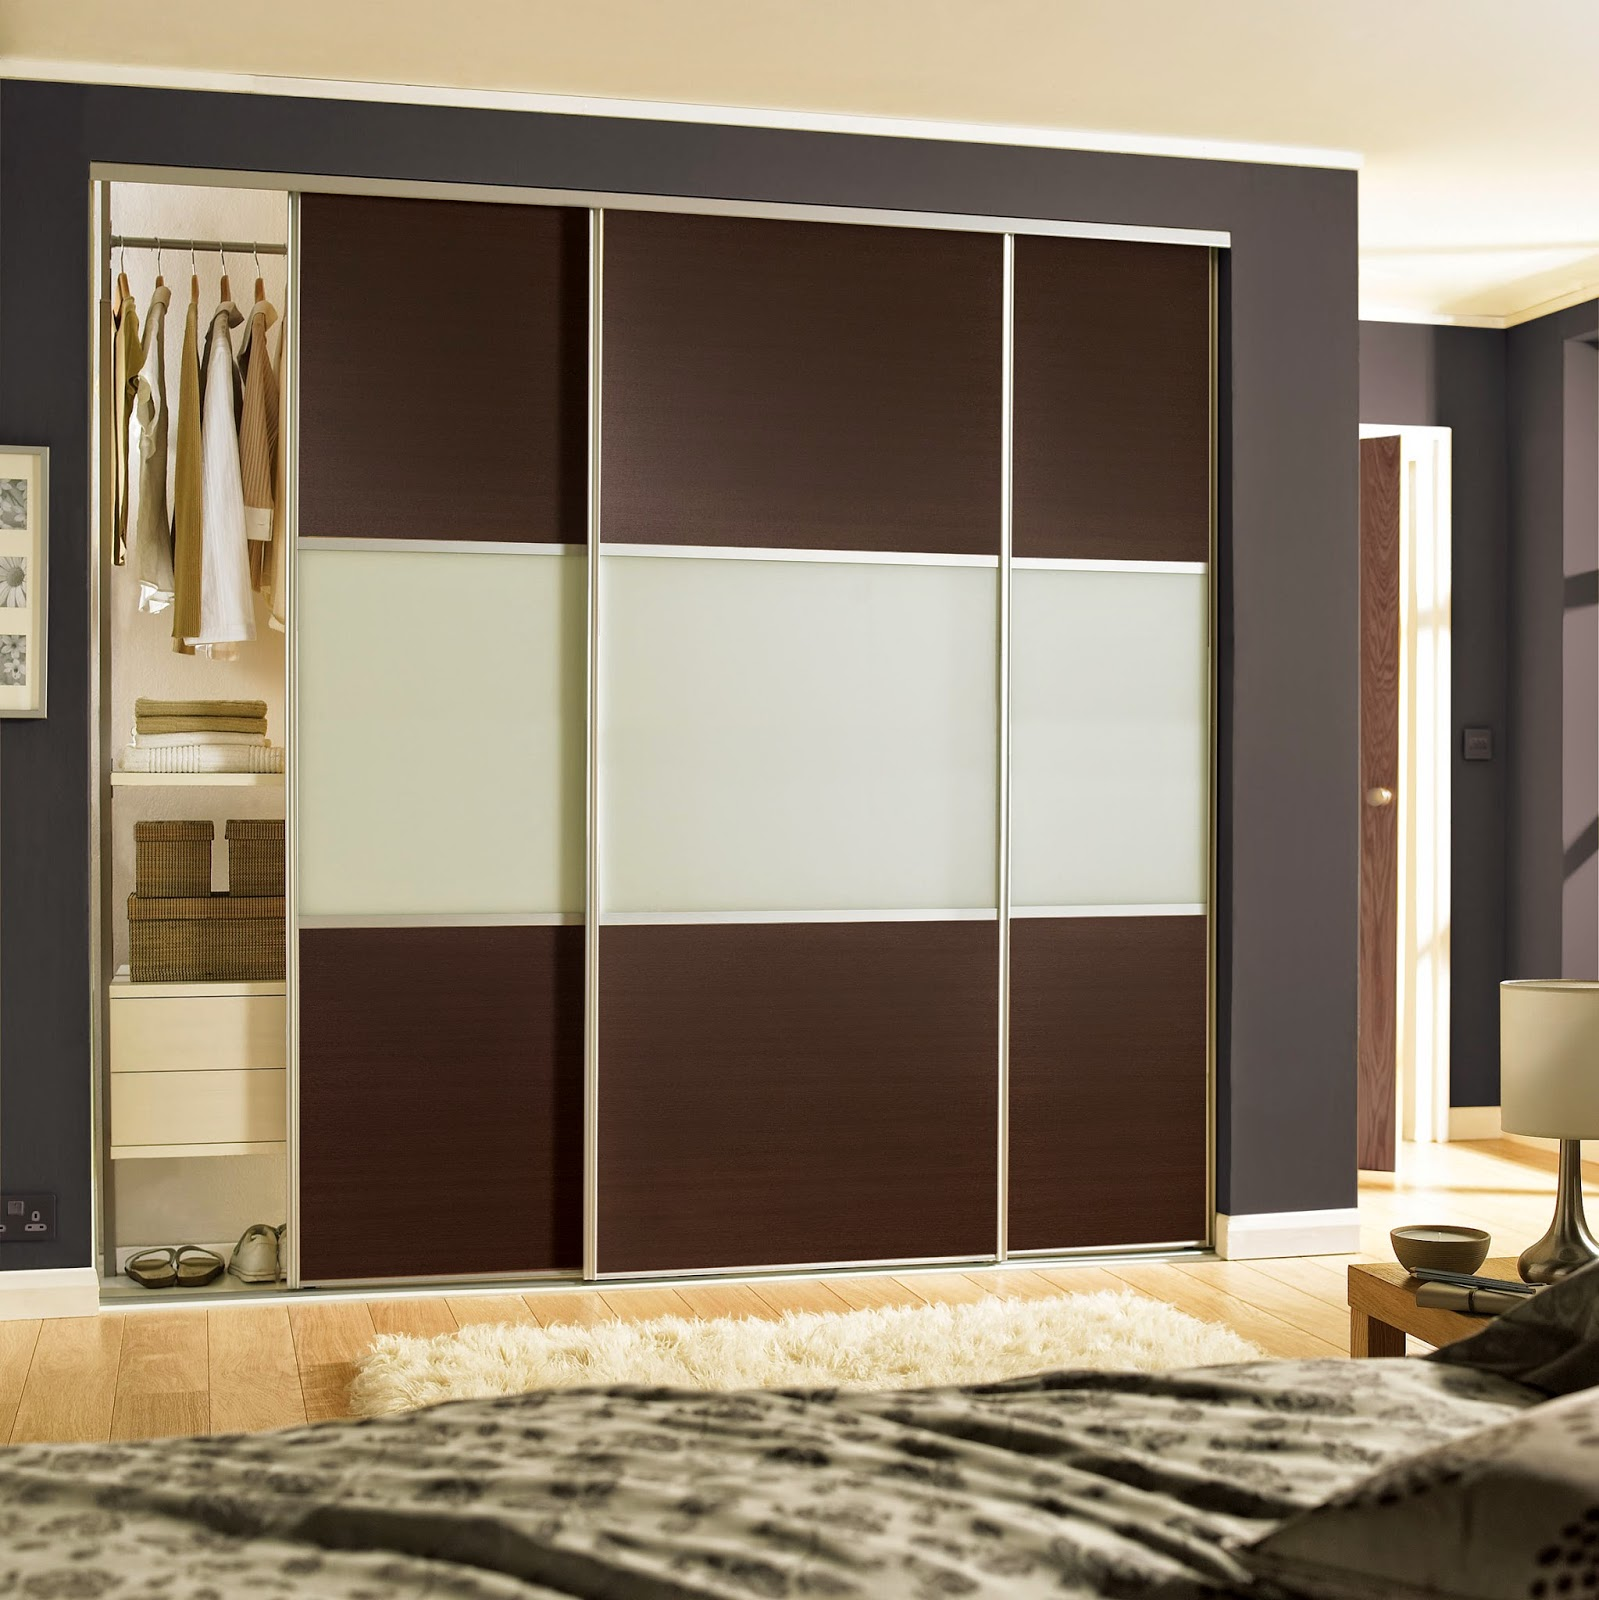 How To Make Built In Wardrobes With Sliding Doors: Bedrooms Plus Sliding Wardrobe Doors And Fittings: How To